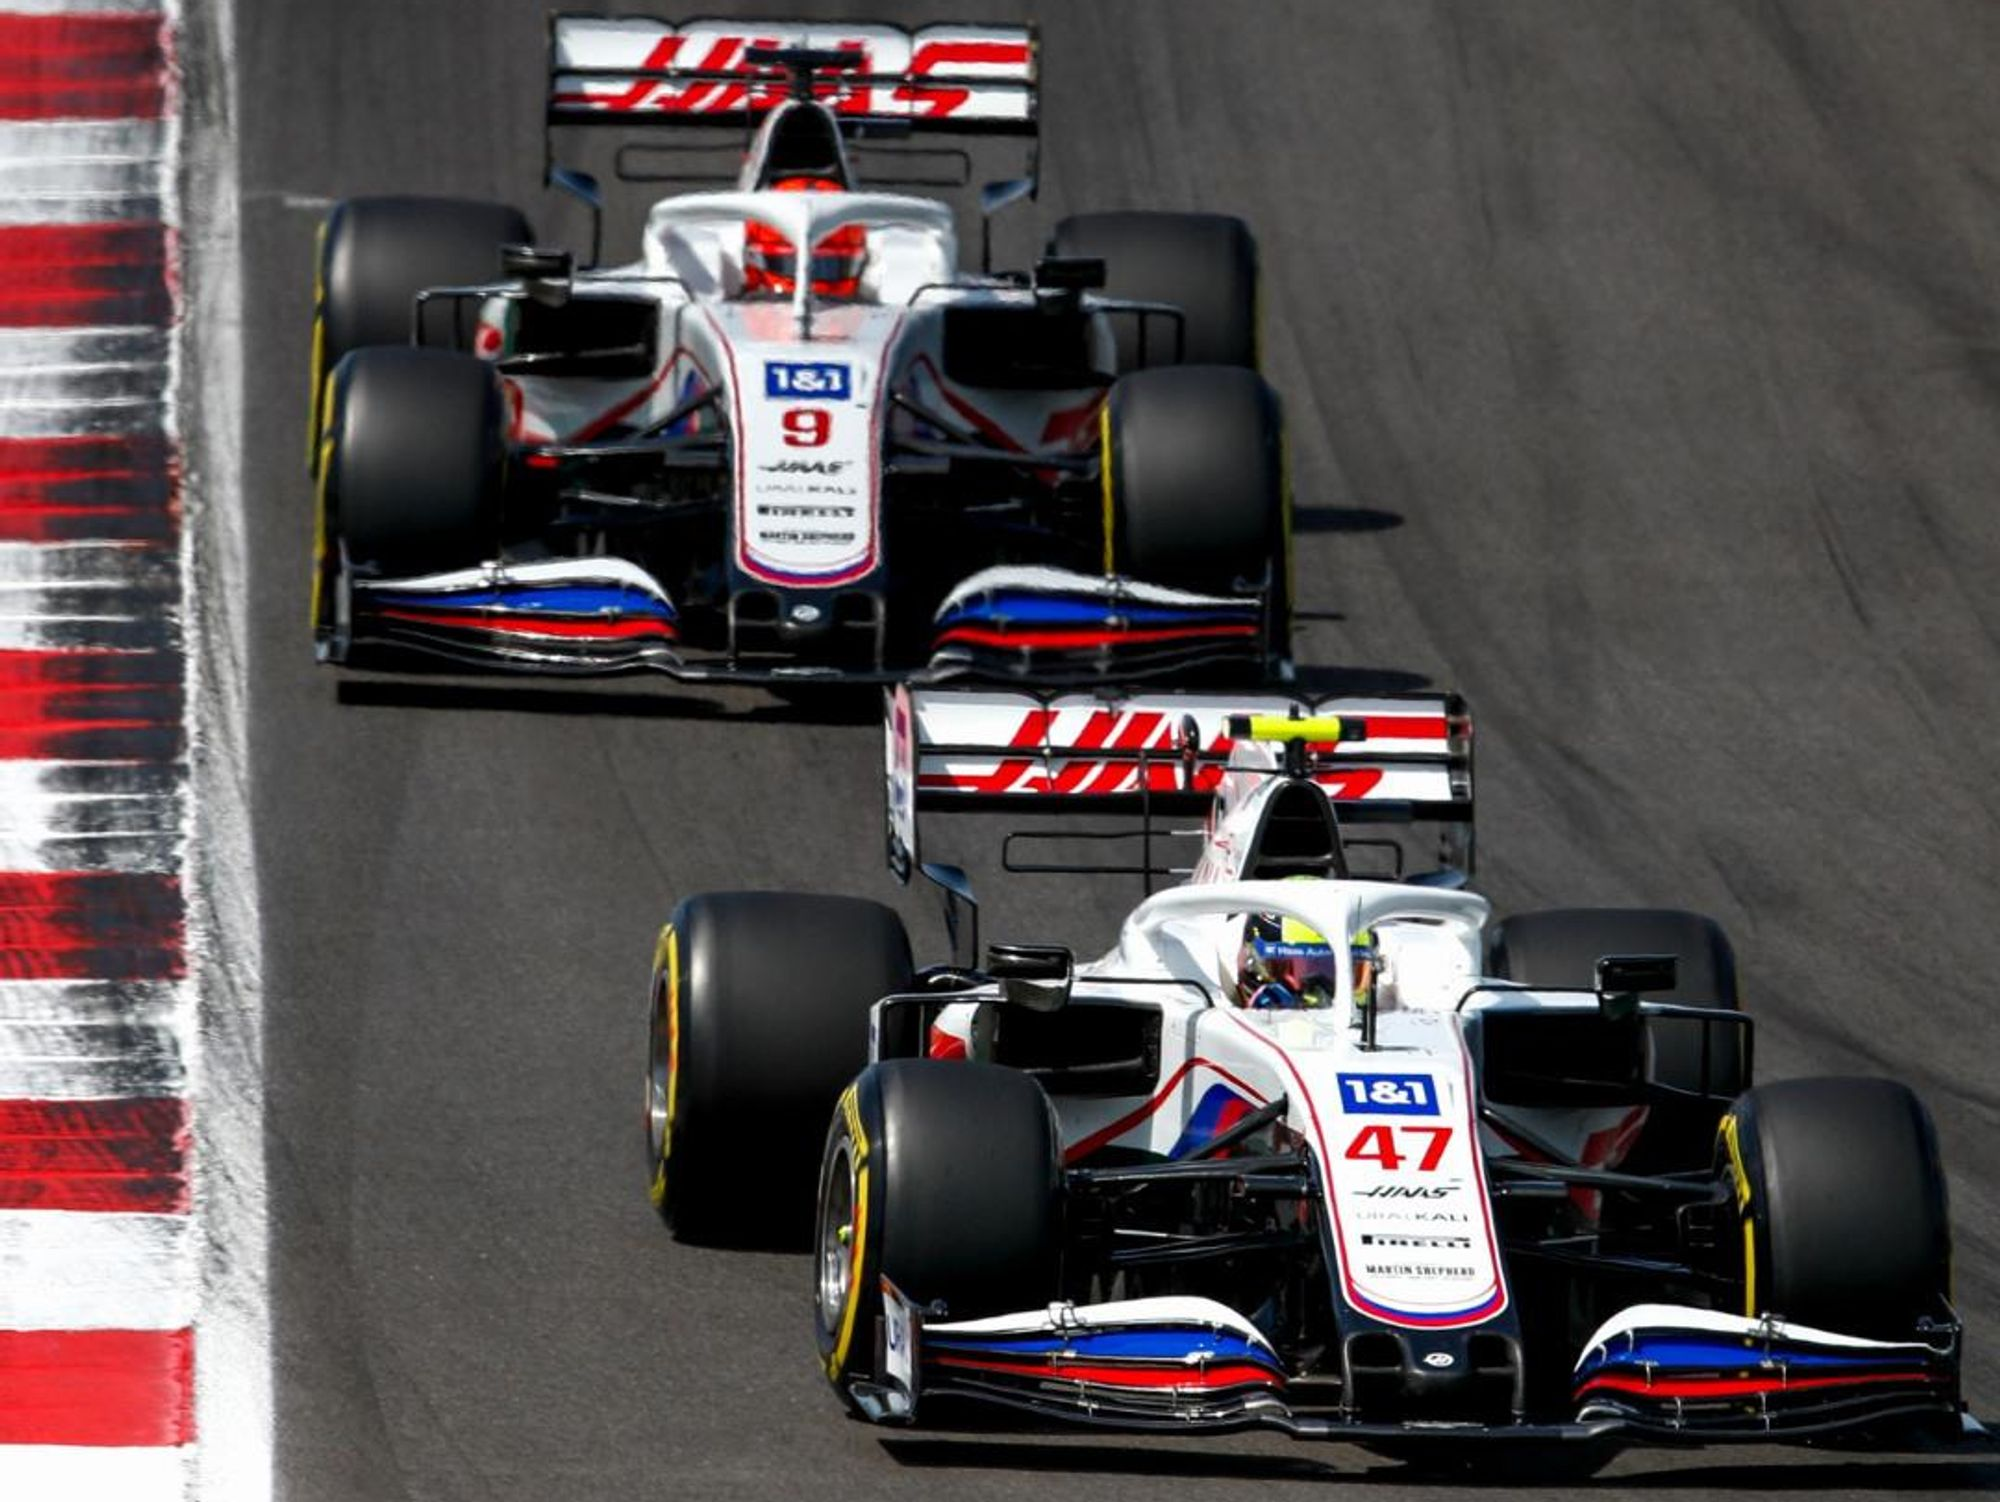 Is the US Grand Prix 'F1 and done'? Sources say contract prospects could be in jeopardy